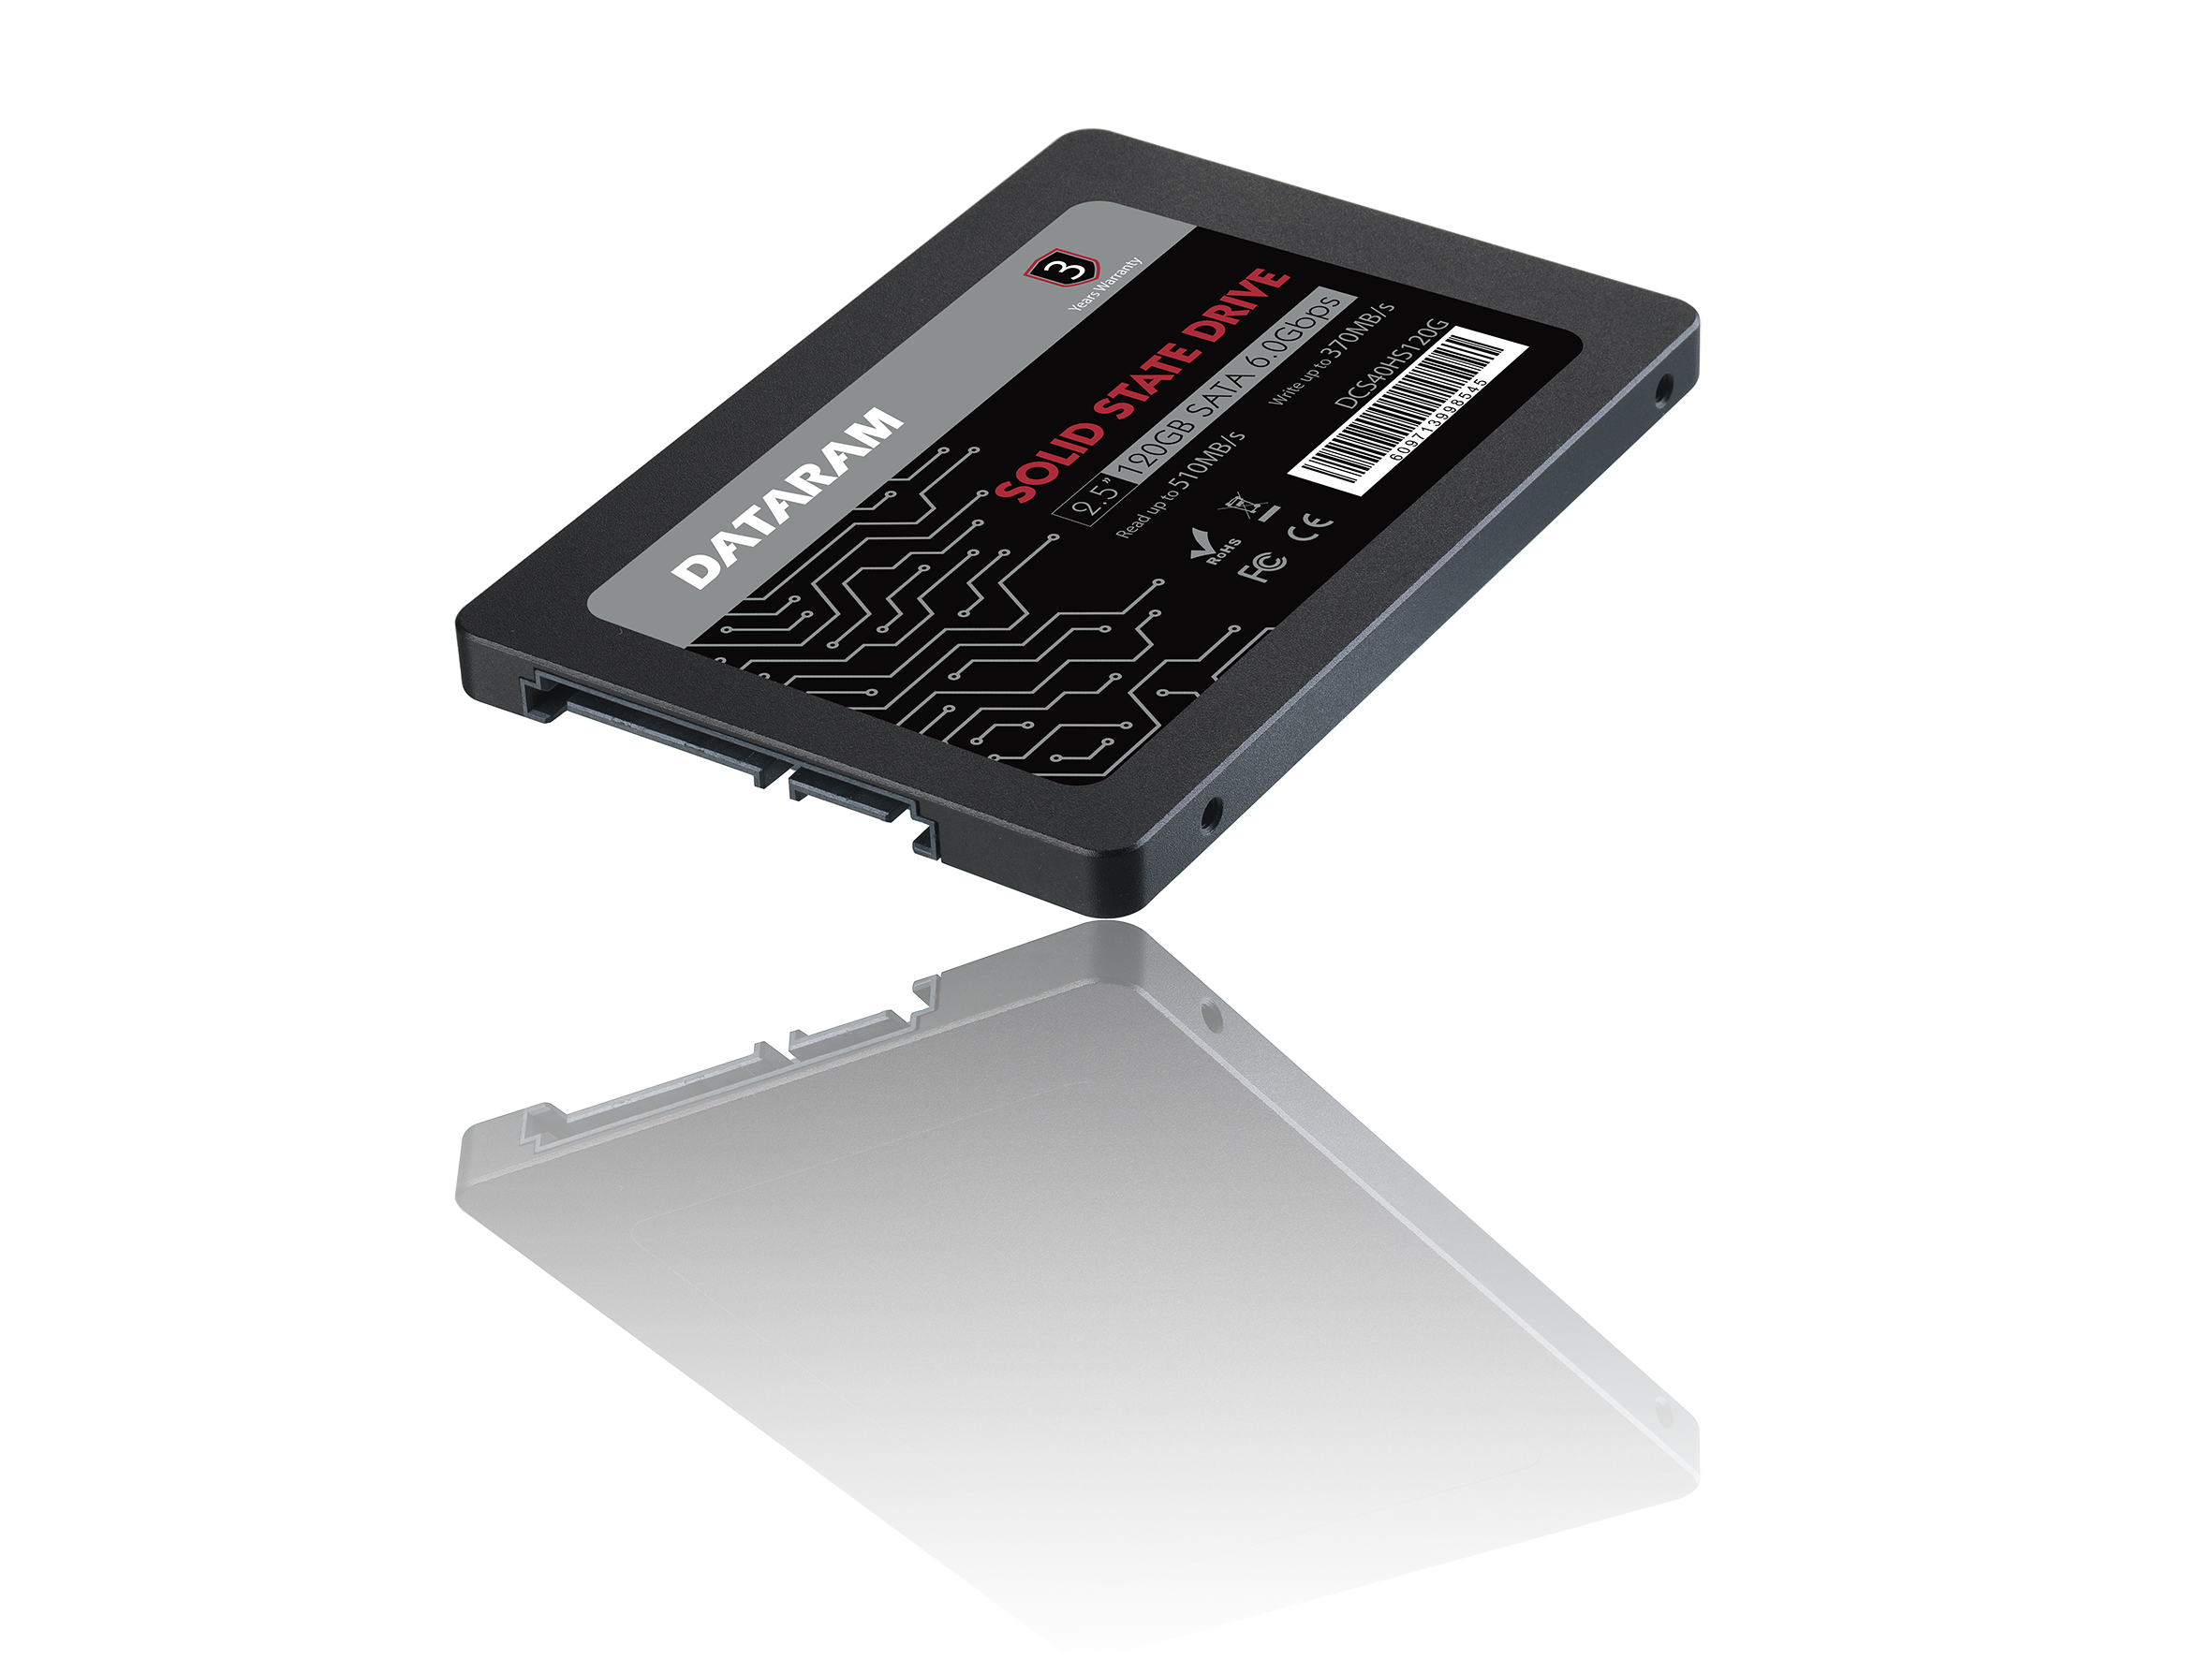 DATARAM 120GB 2.5 SSD Drive Solid State Drive Compatible with GIGABYTE GB-BKI5T2-7200